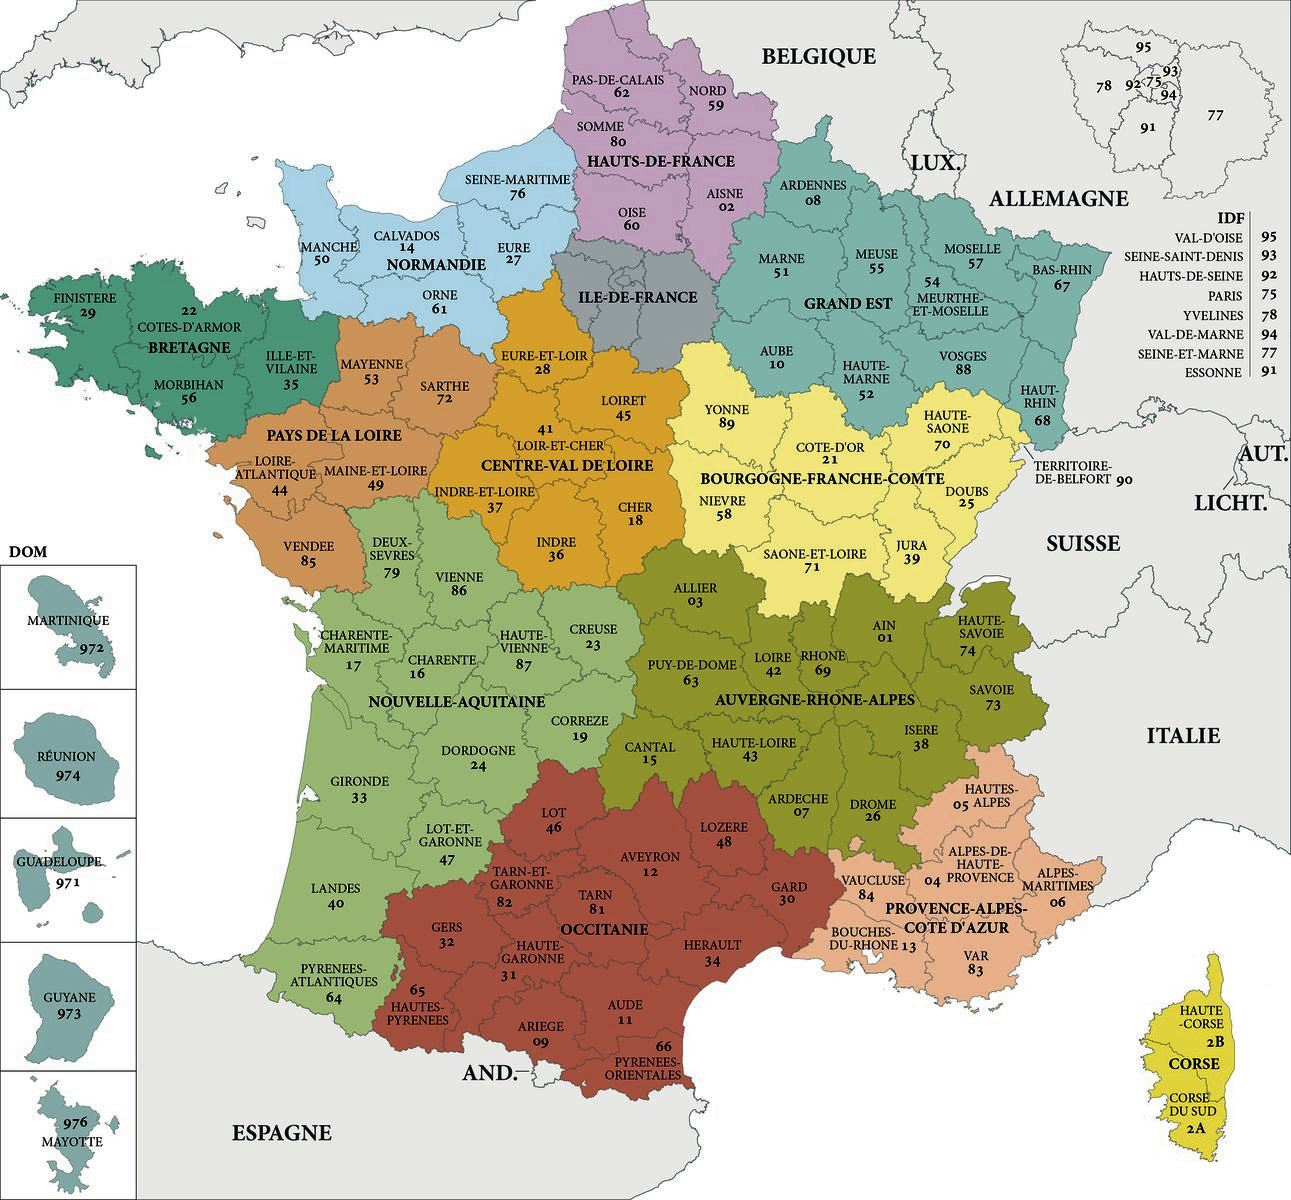 Carte De France Departements : Carte Des Départements De France tout Numero Des Departements Francais